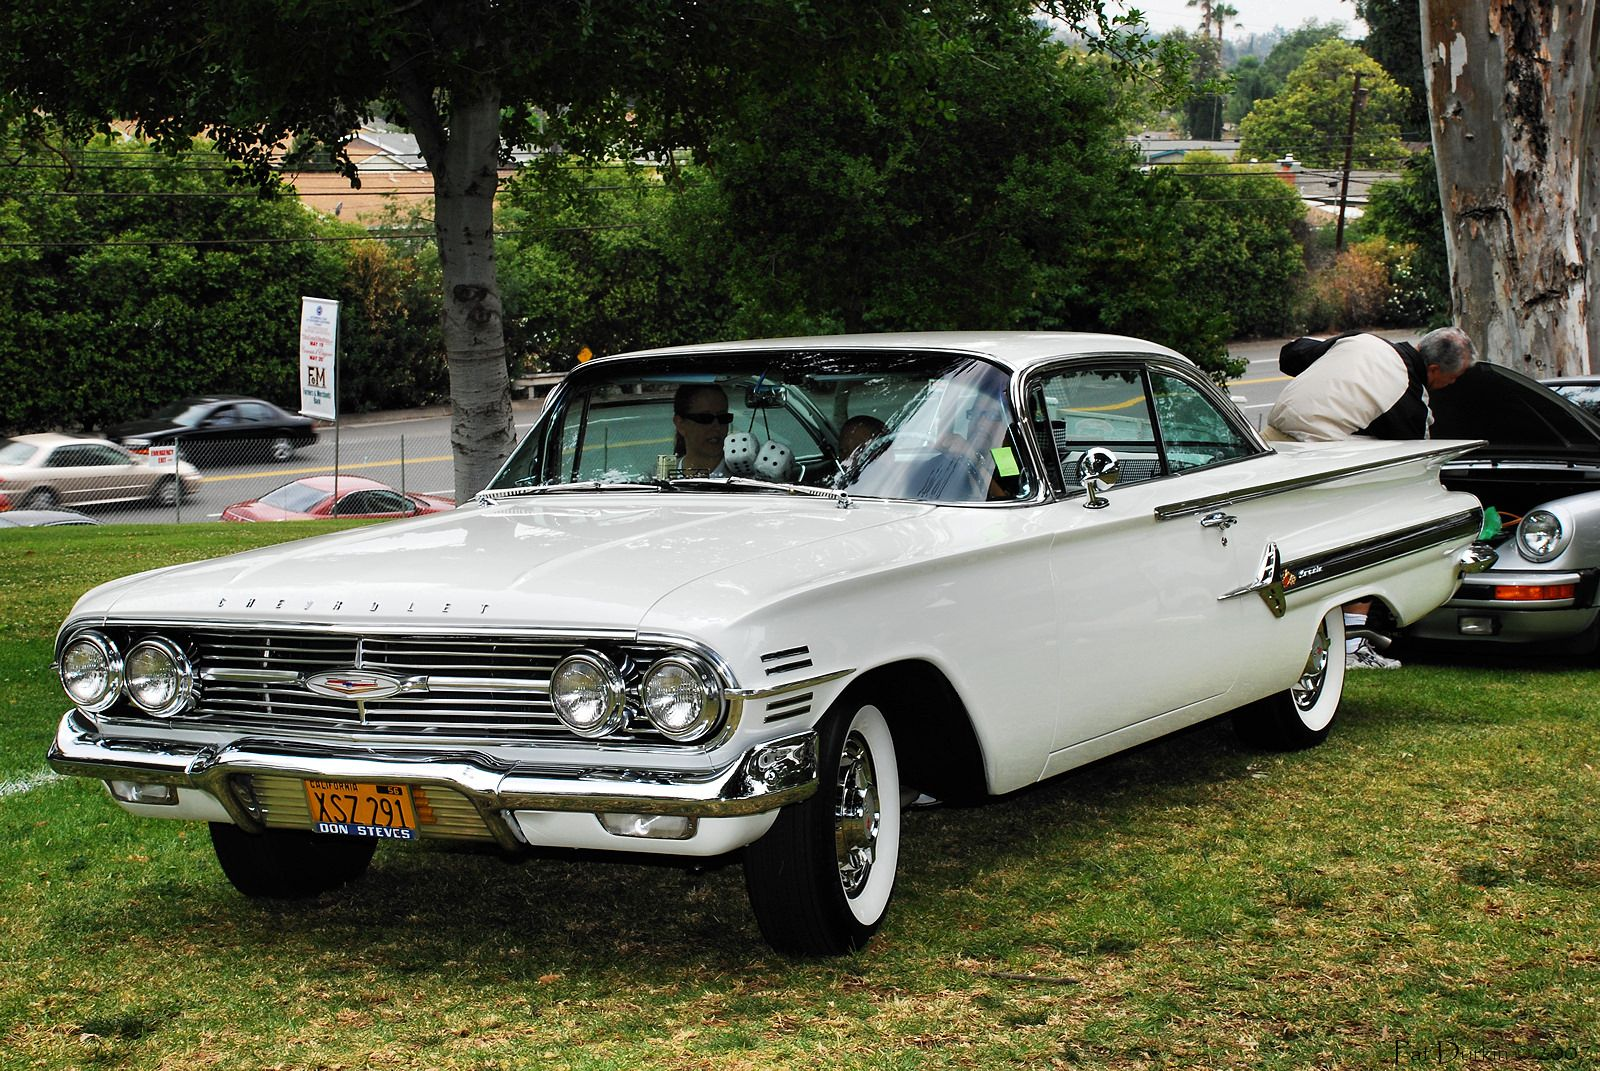 1960 Chevy Impala Google Search Cars Chevrolet Chevrolet